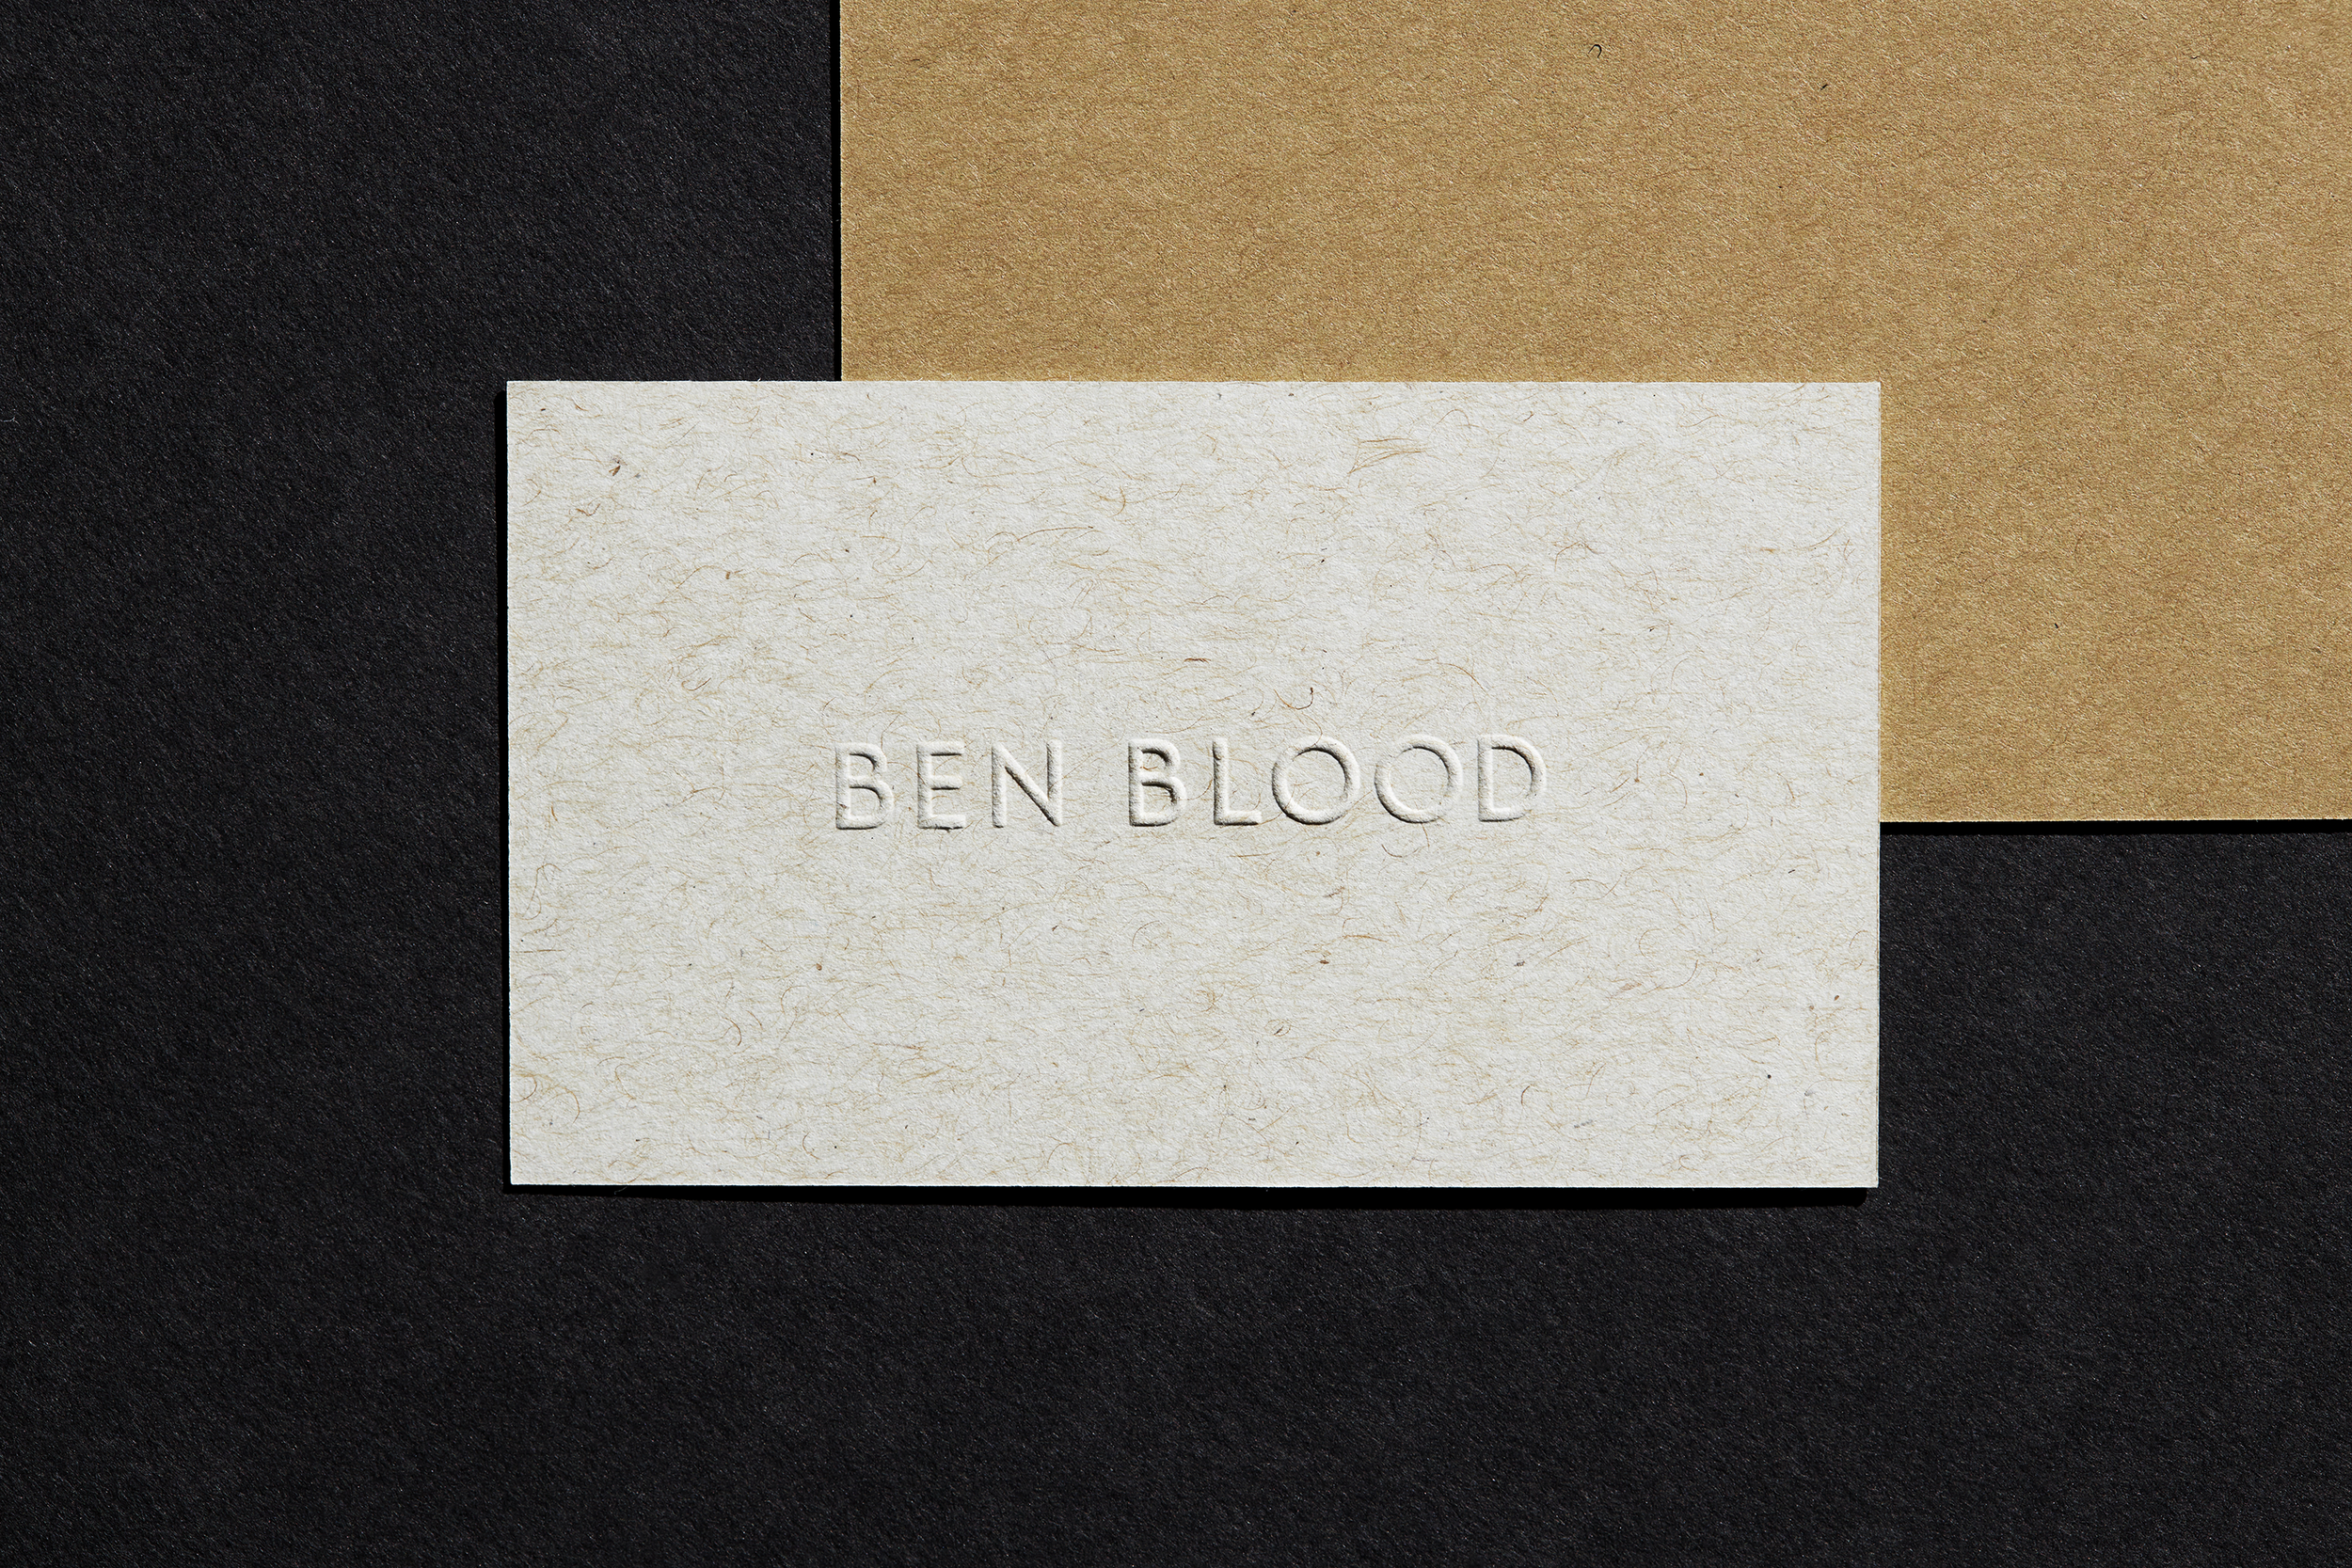 20190205_wolfer_benblood0028.png